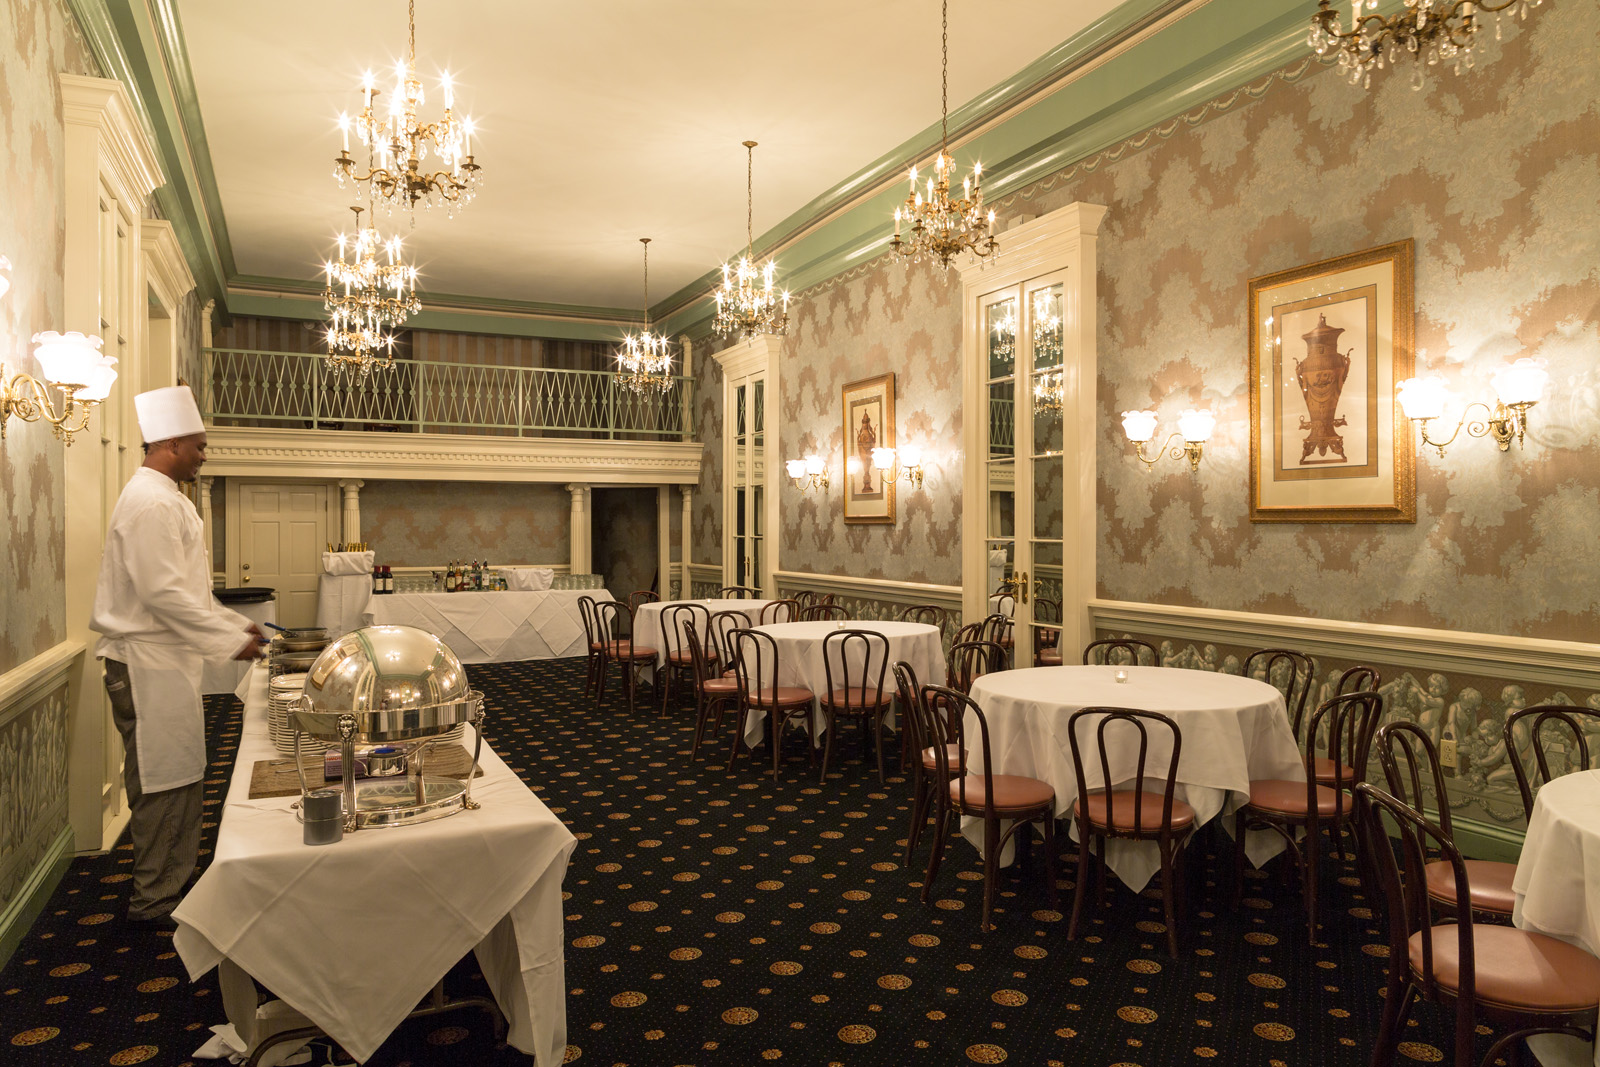 Arnaud S Irma Room French Quarter Private Dining